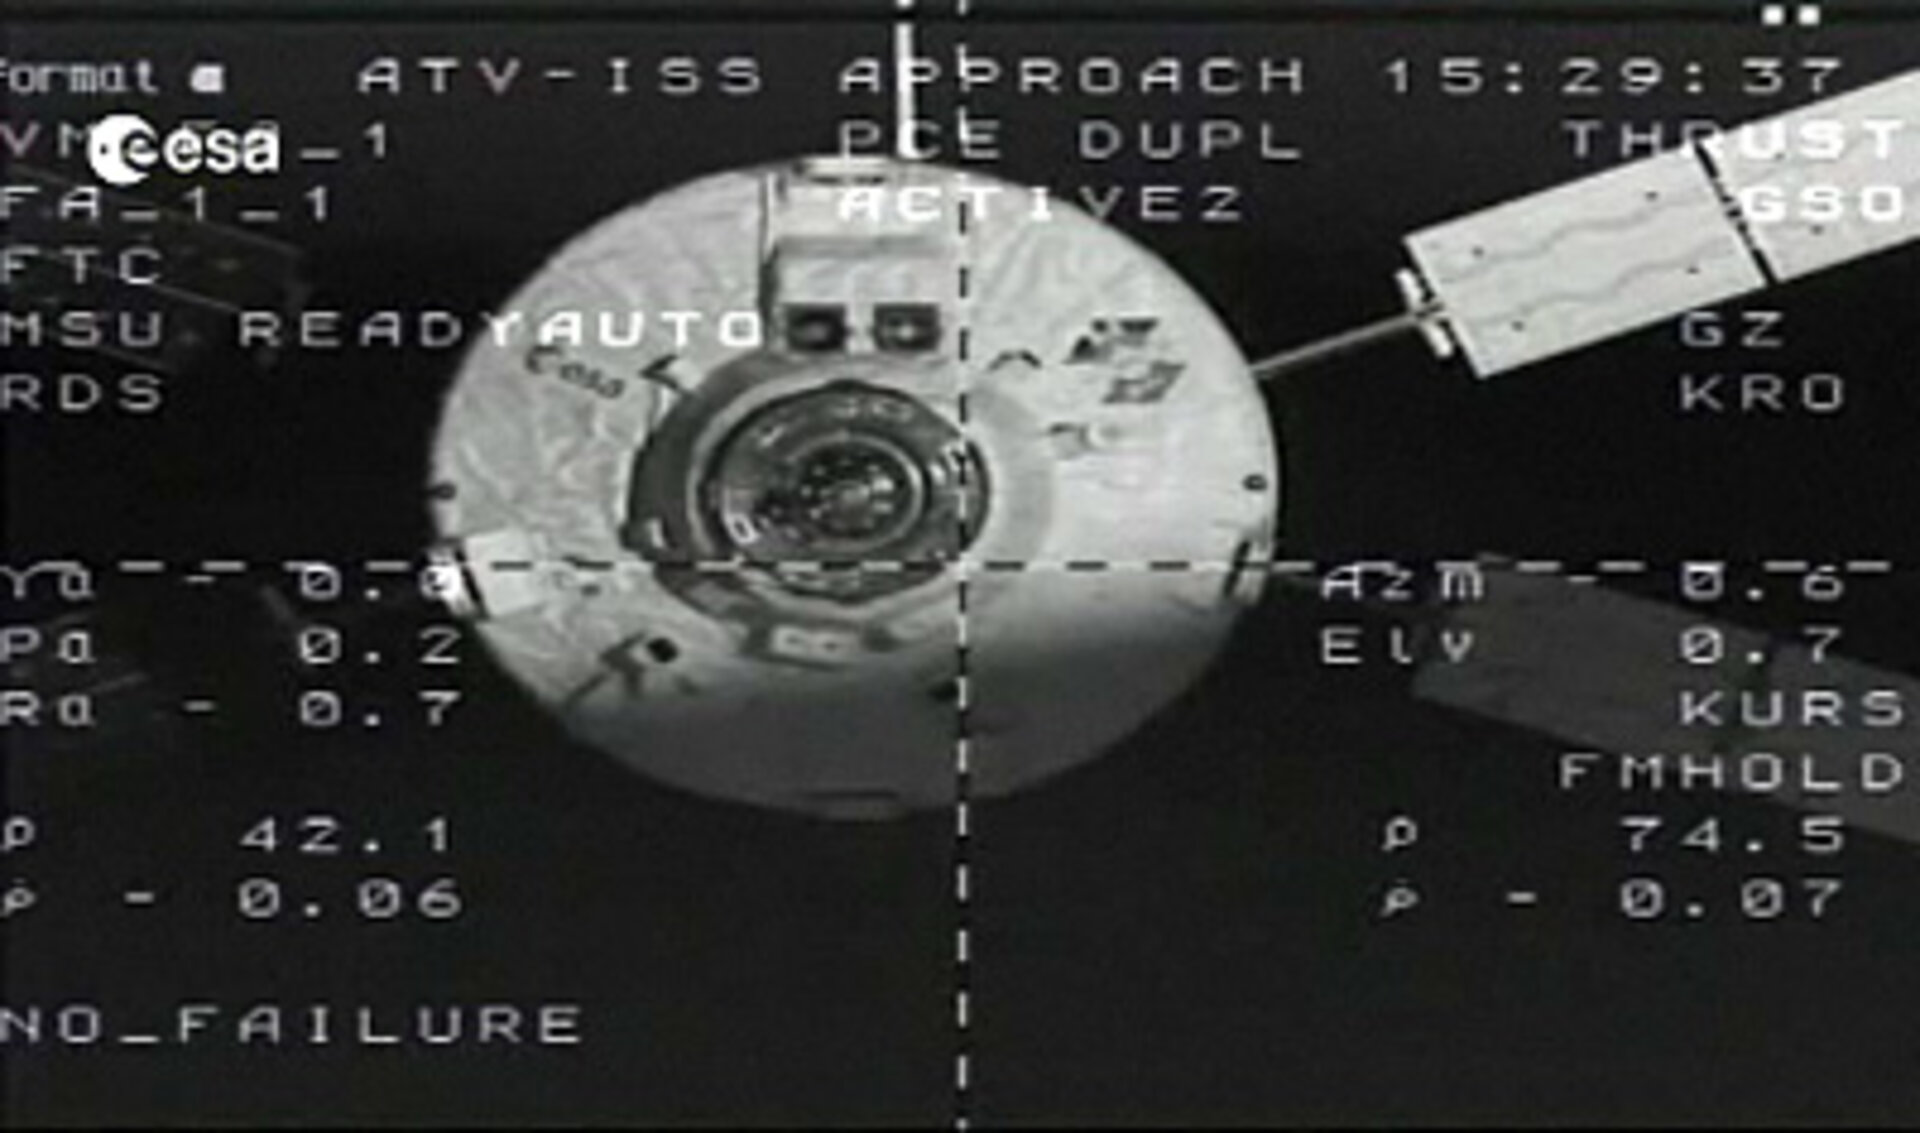 ATV-2 closing in